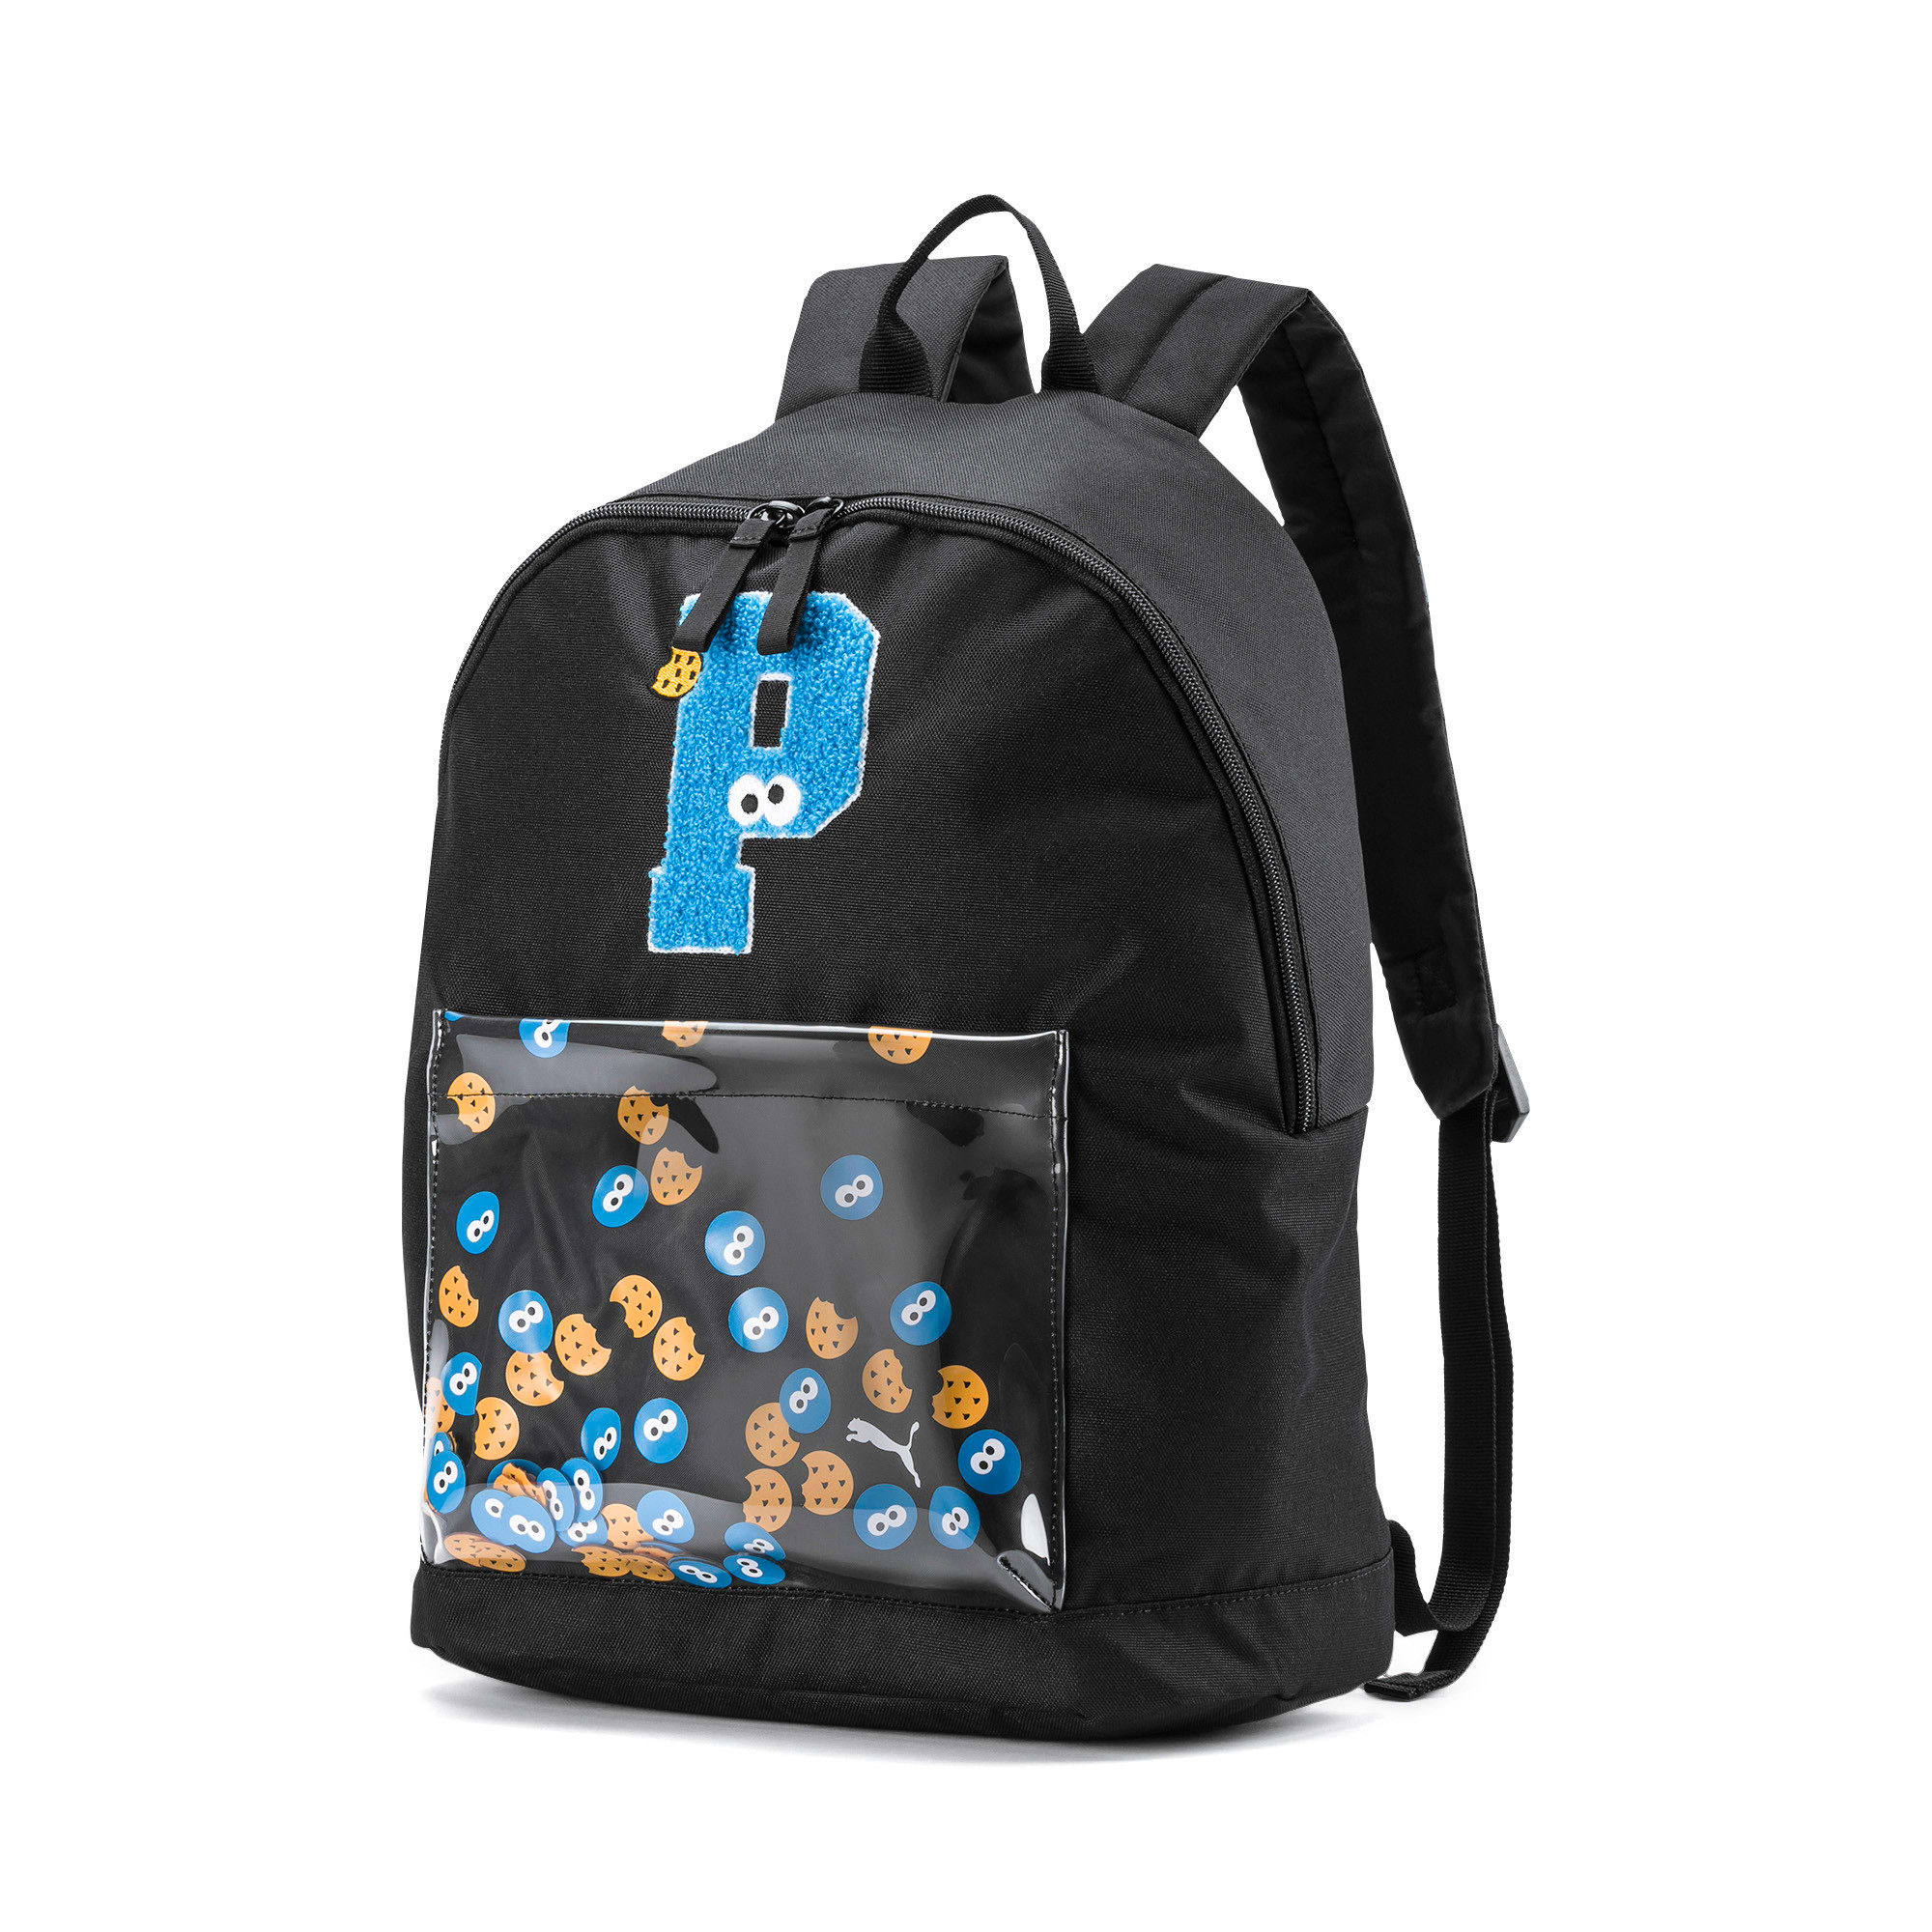 Anteprima 1 di Sesame Street Sport Kids' Backpack, Puma Black, medio